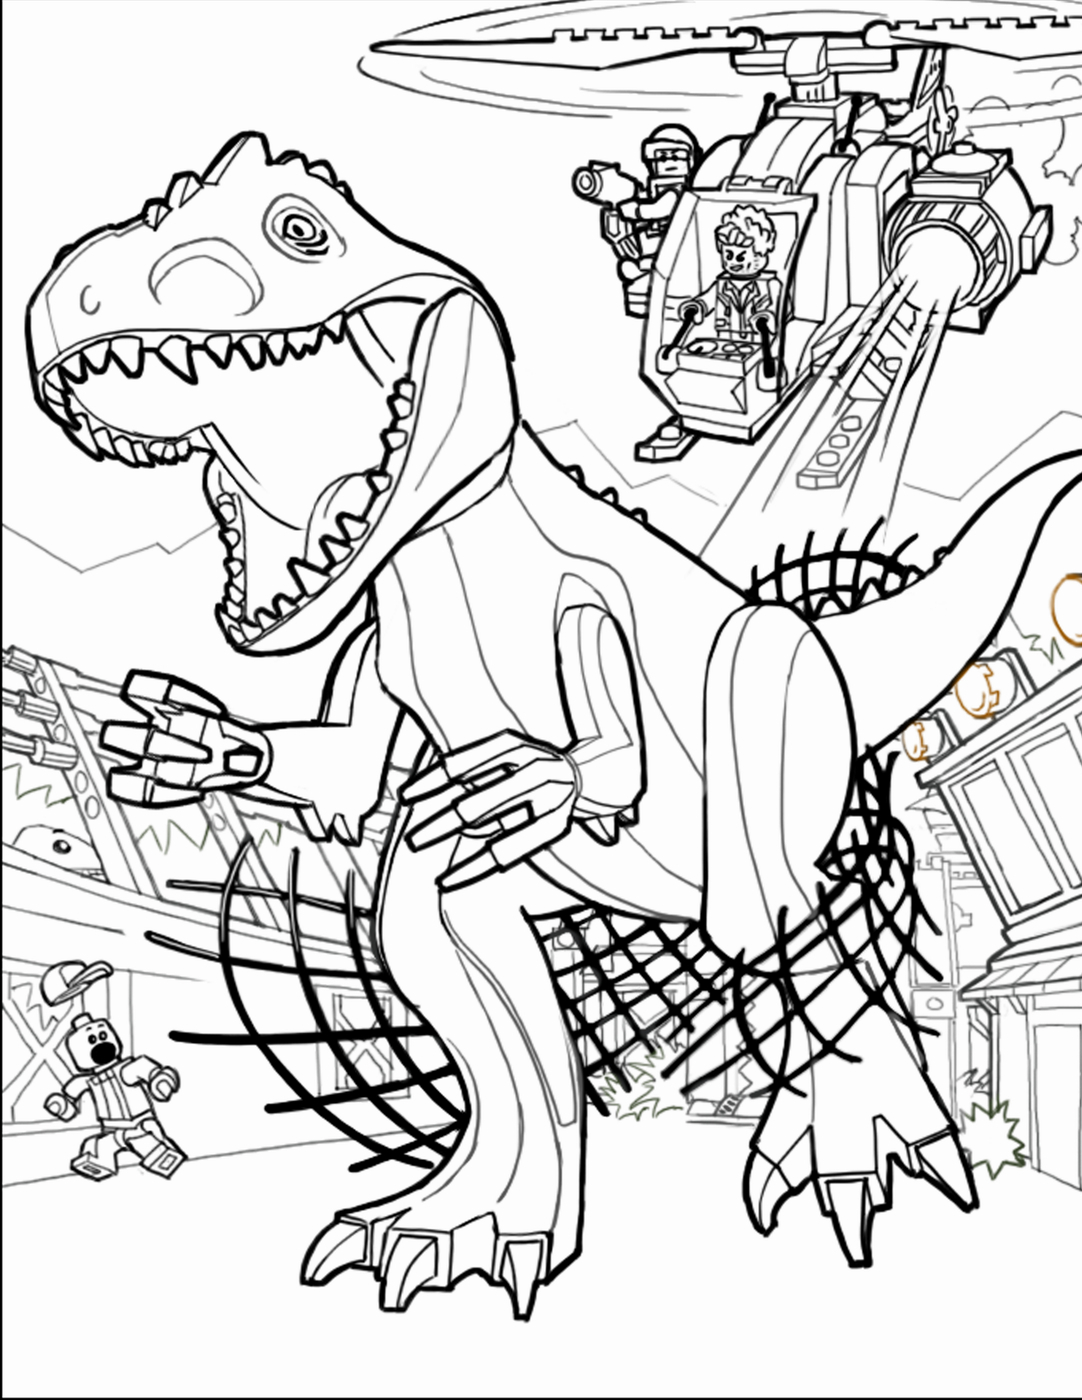 Jurassic Park Coloring Pages  Download 9r - To print for your project